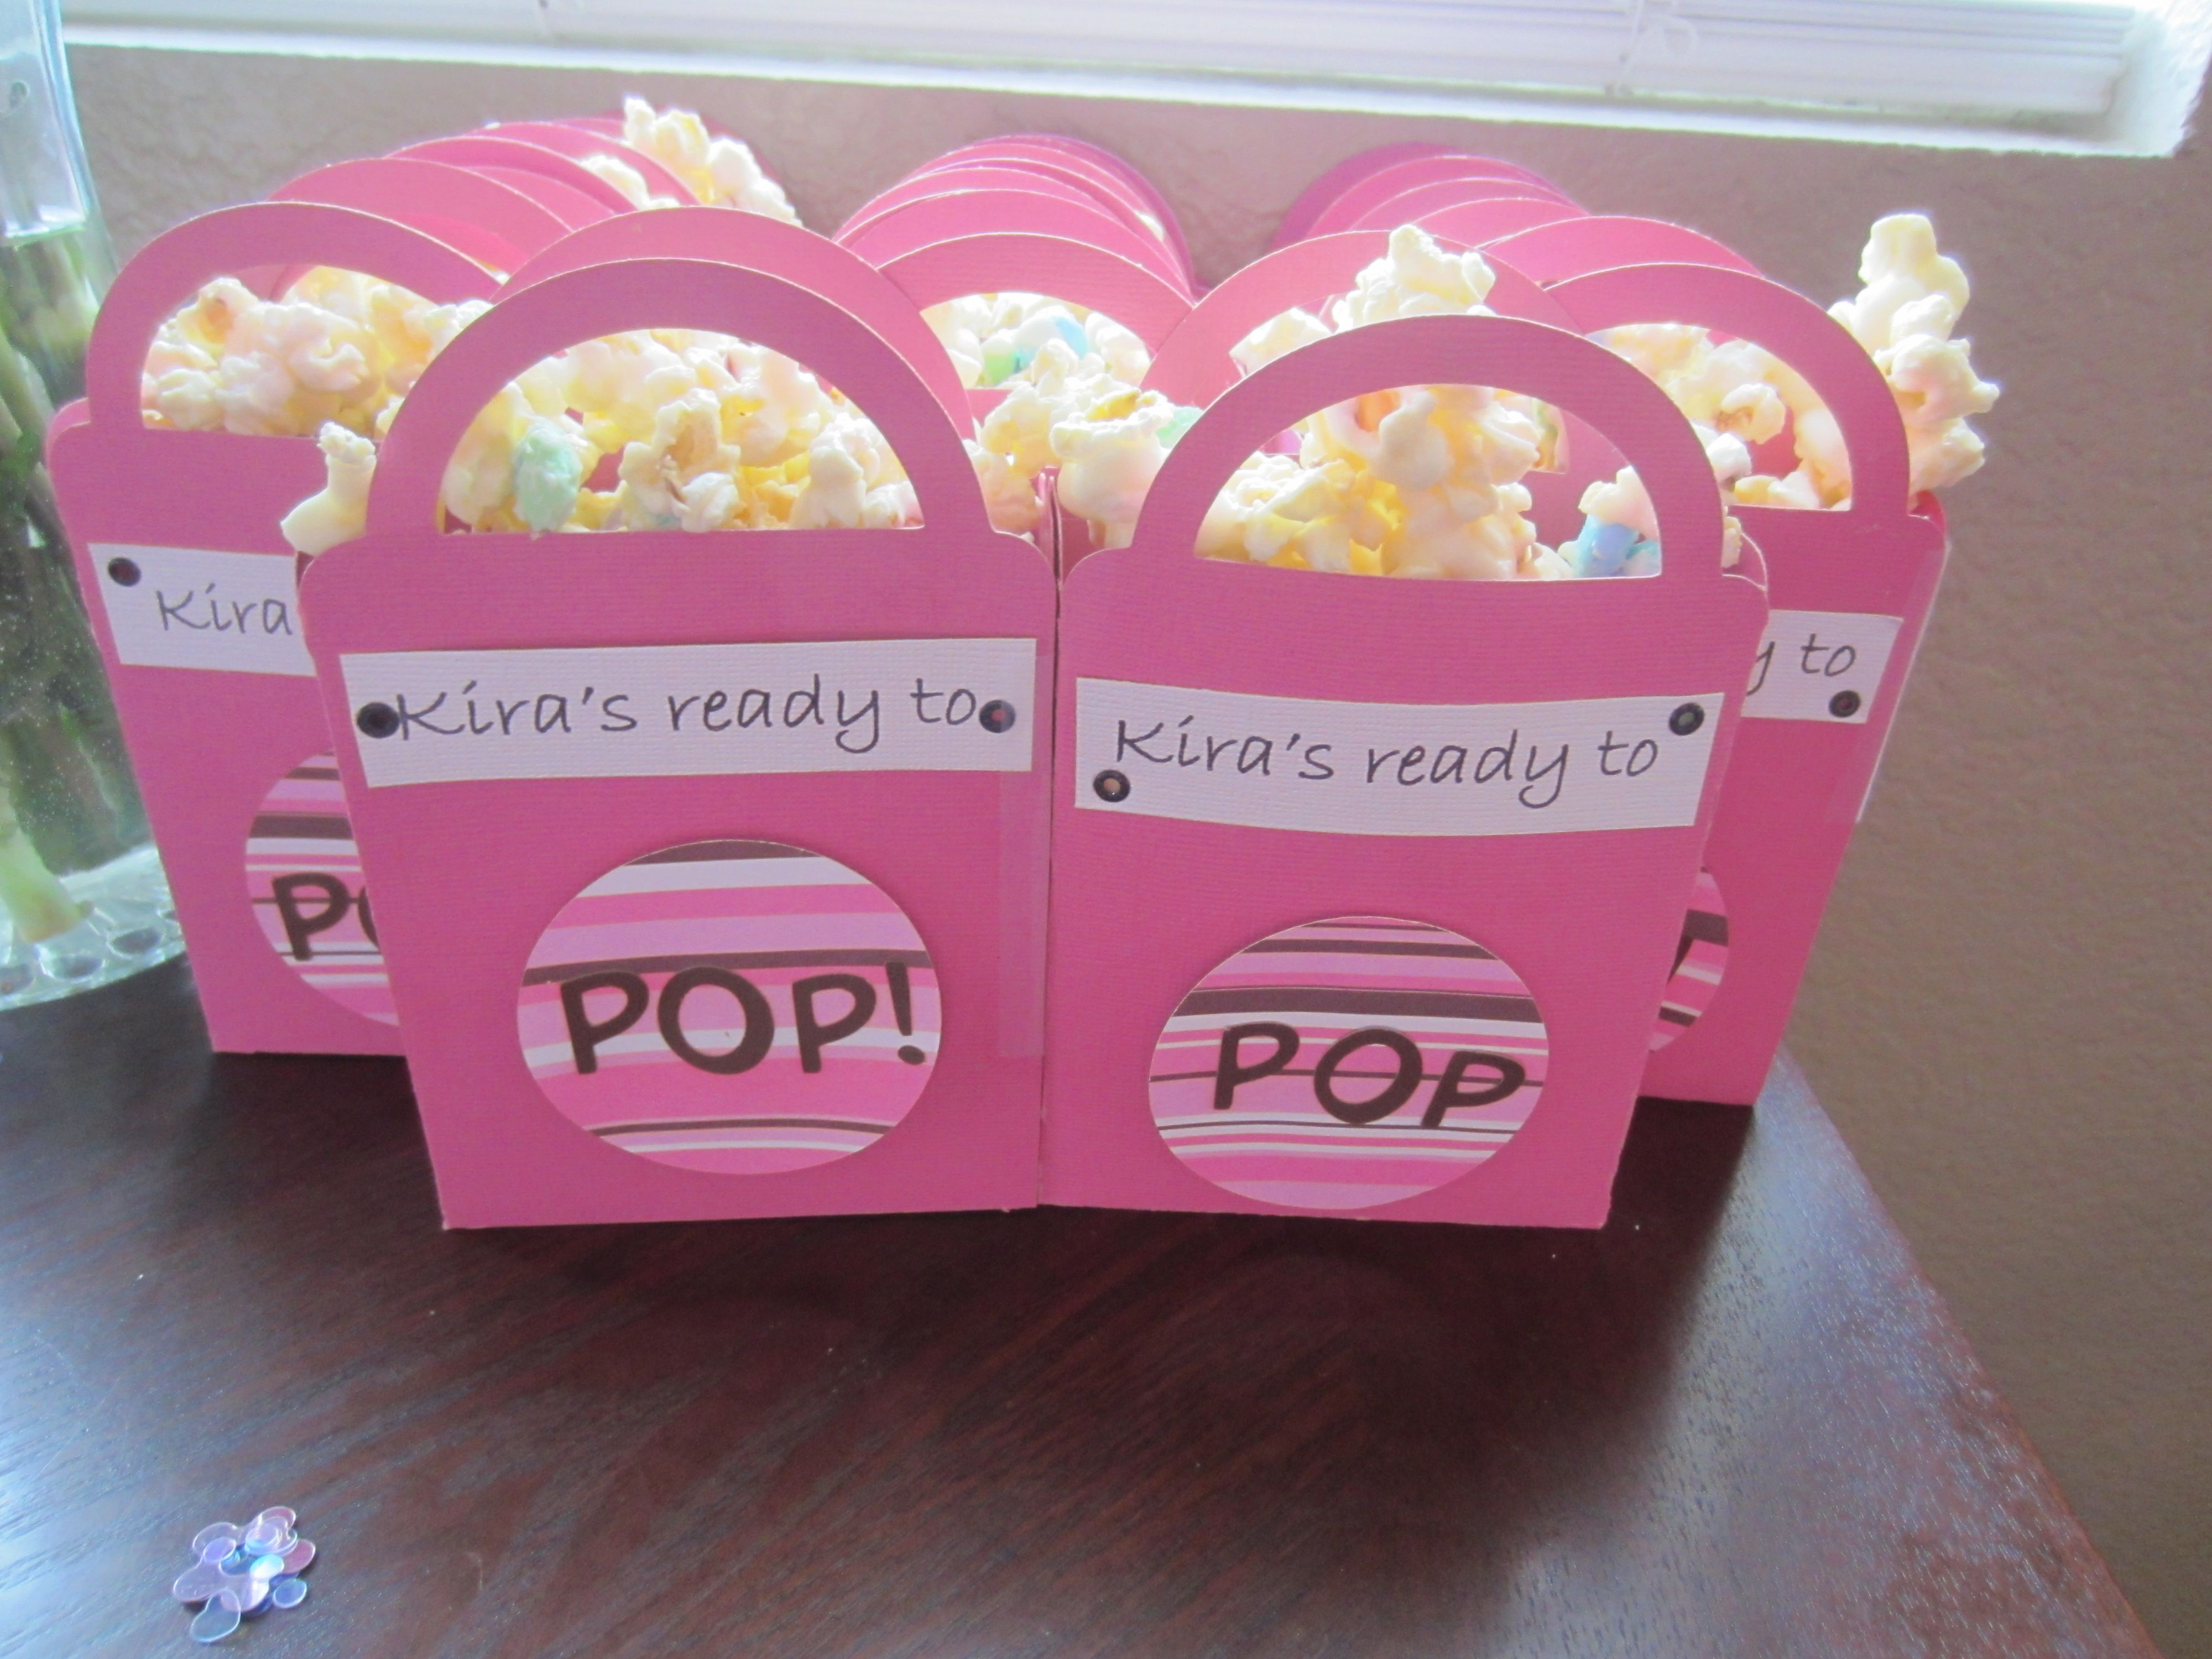 Baby Gift Ideas Using Cricut : Baby shower favors using cricut crafts